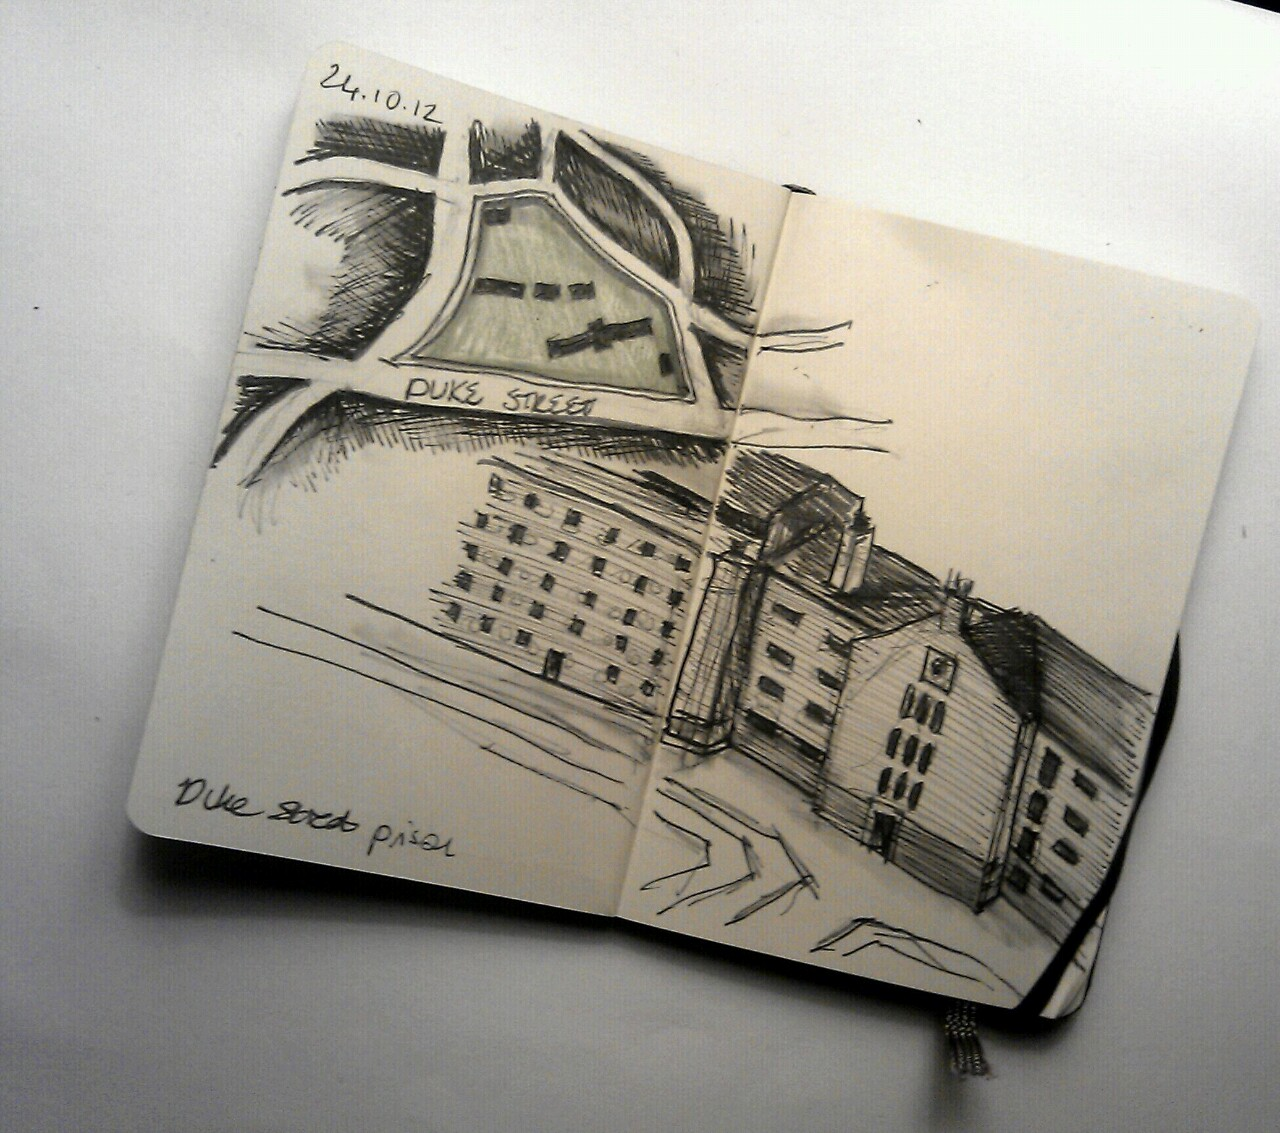 365 drawings later … day 267 … duke street prison